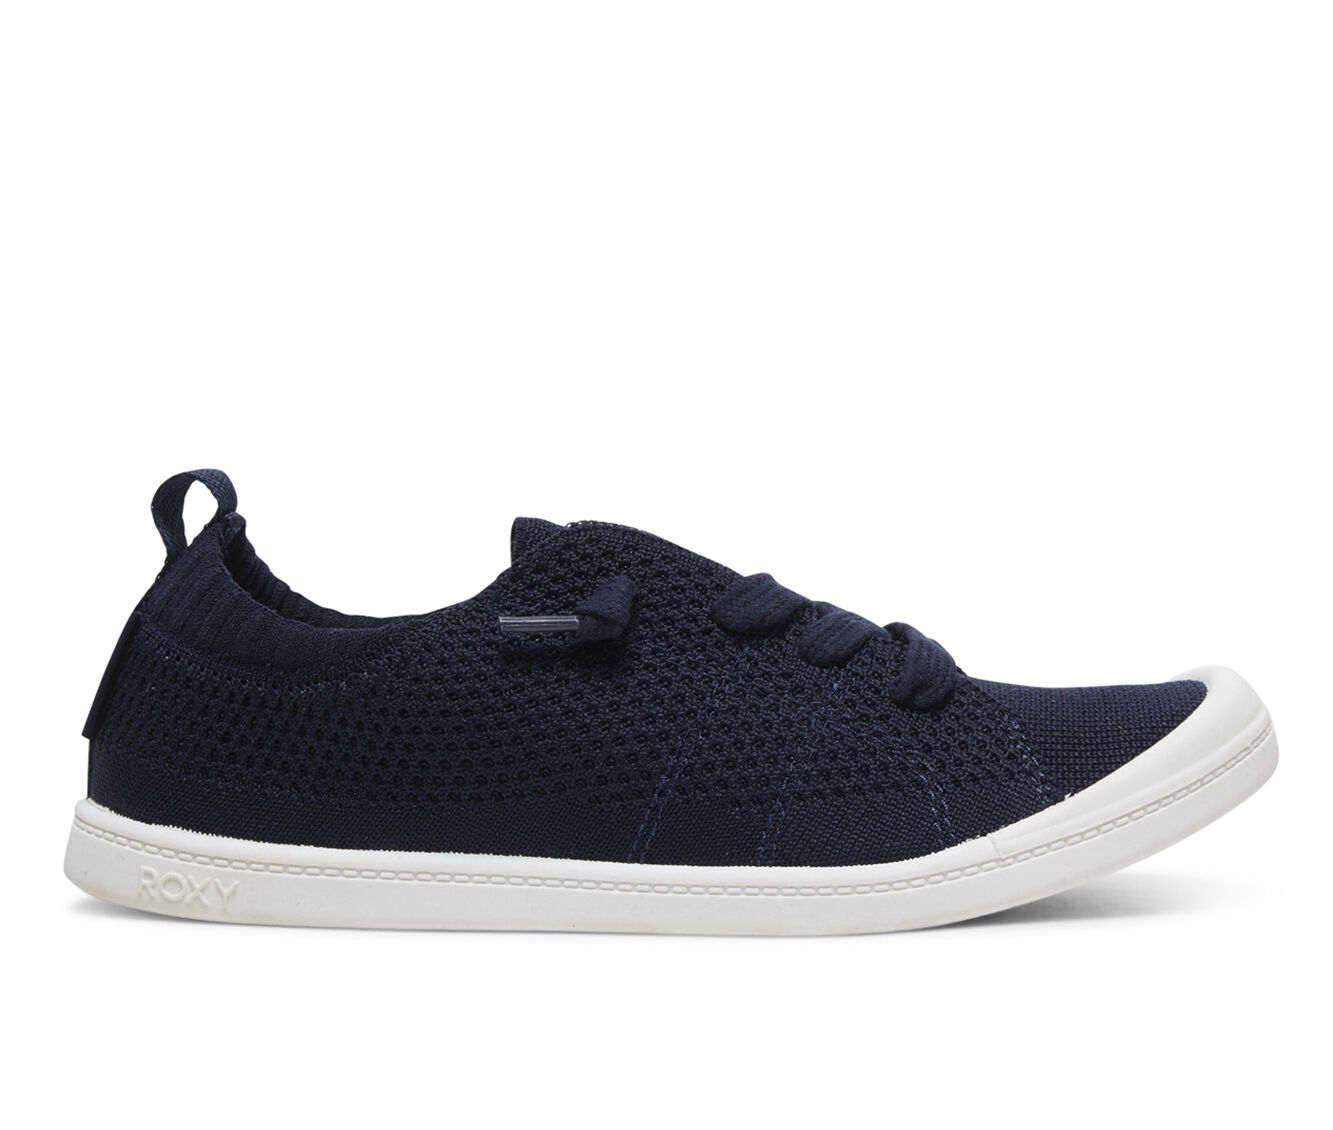 Beautifu Women's Roxy Bayshore Sneakers Navy Knit